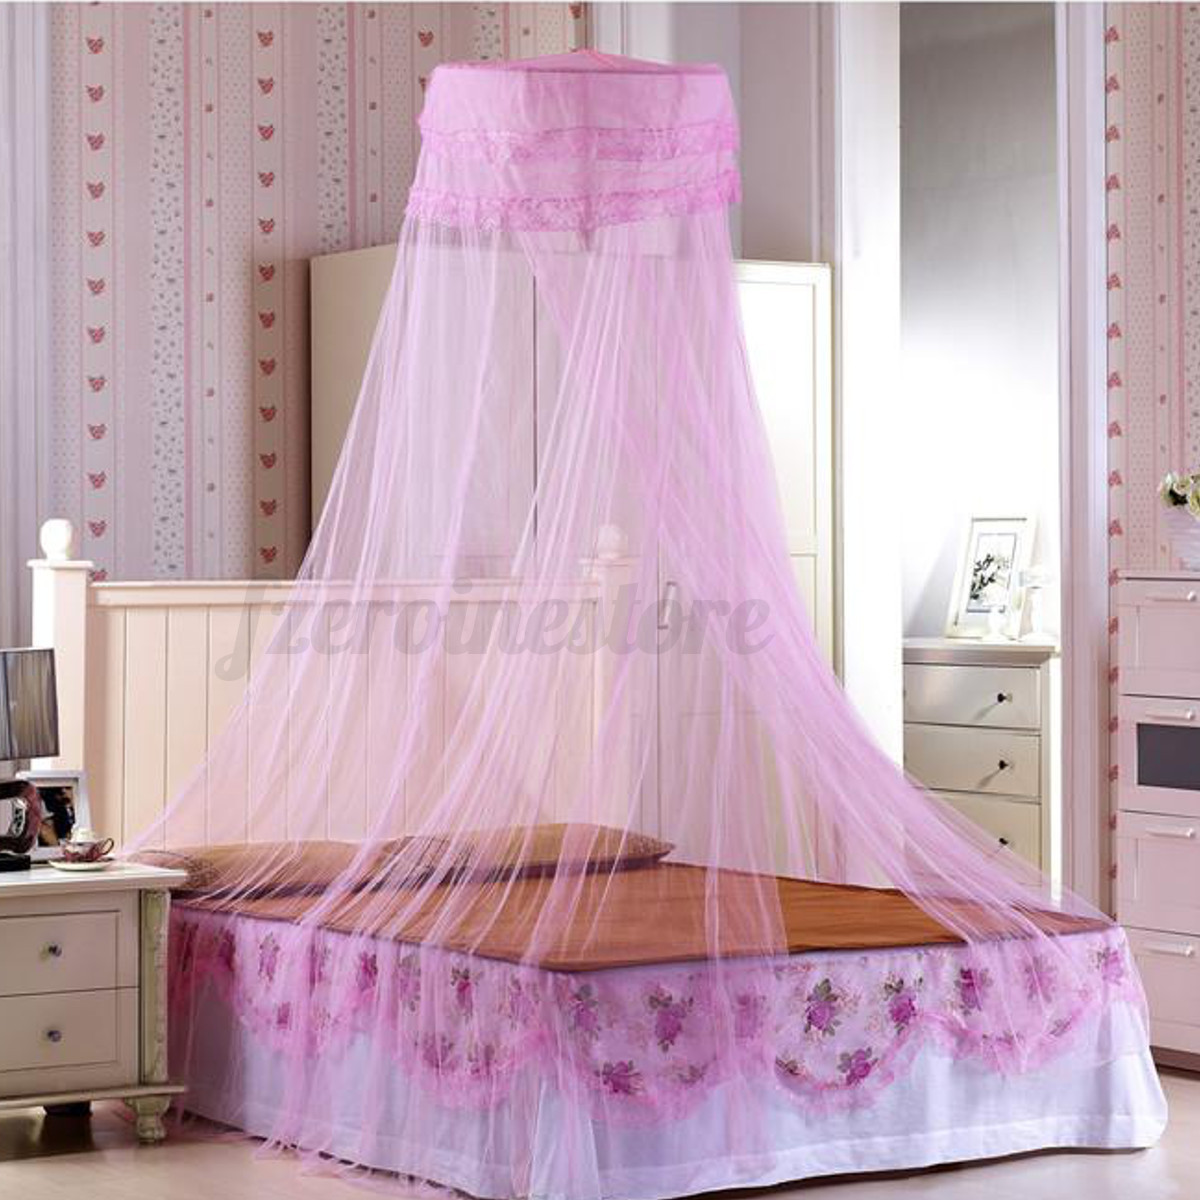 elegant lace bed mosquito netting mesh canopy princess. Black Bedroom Furniture Sets. Home Design Ideas